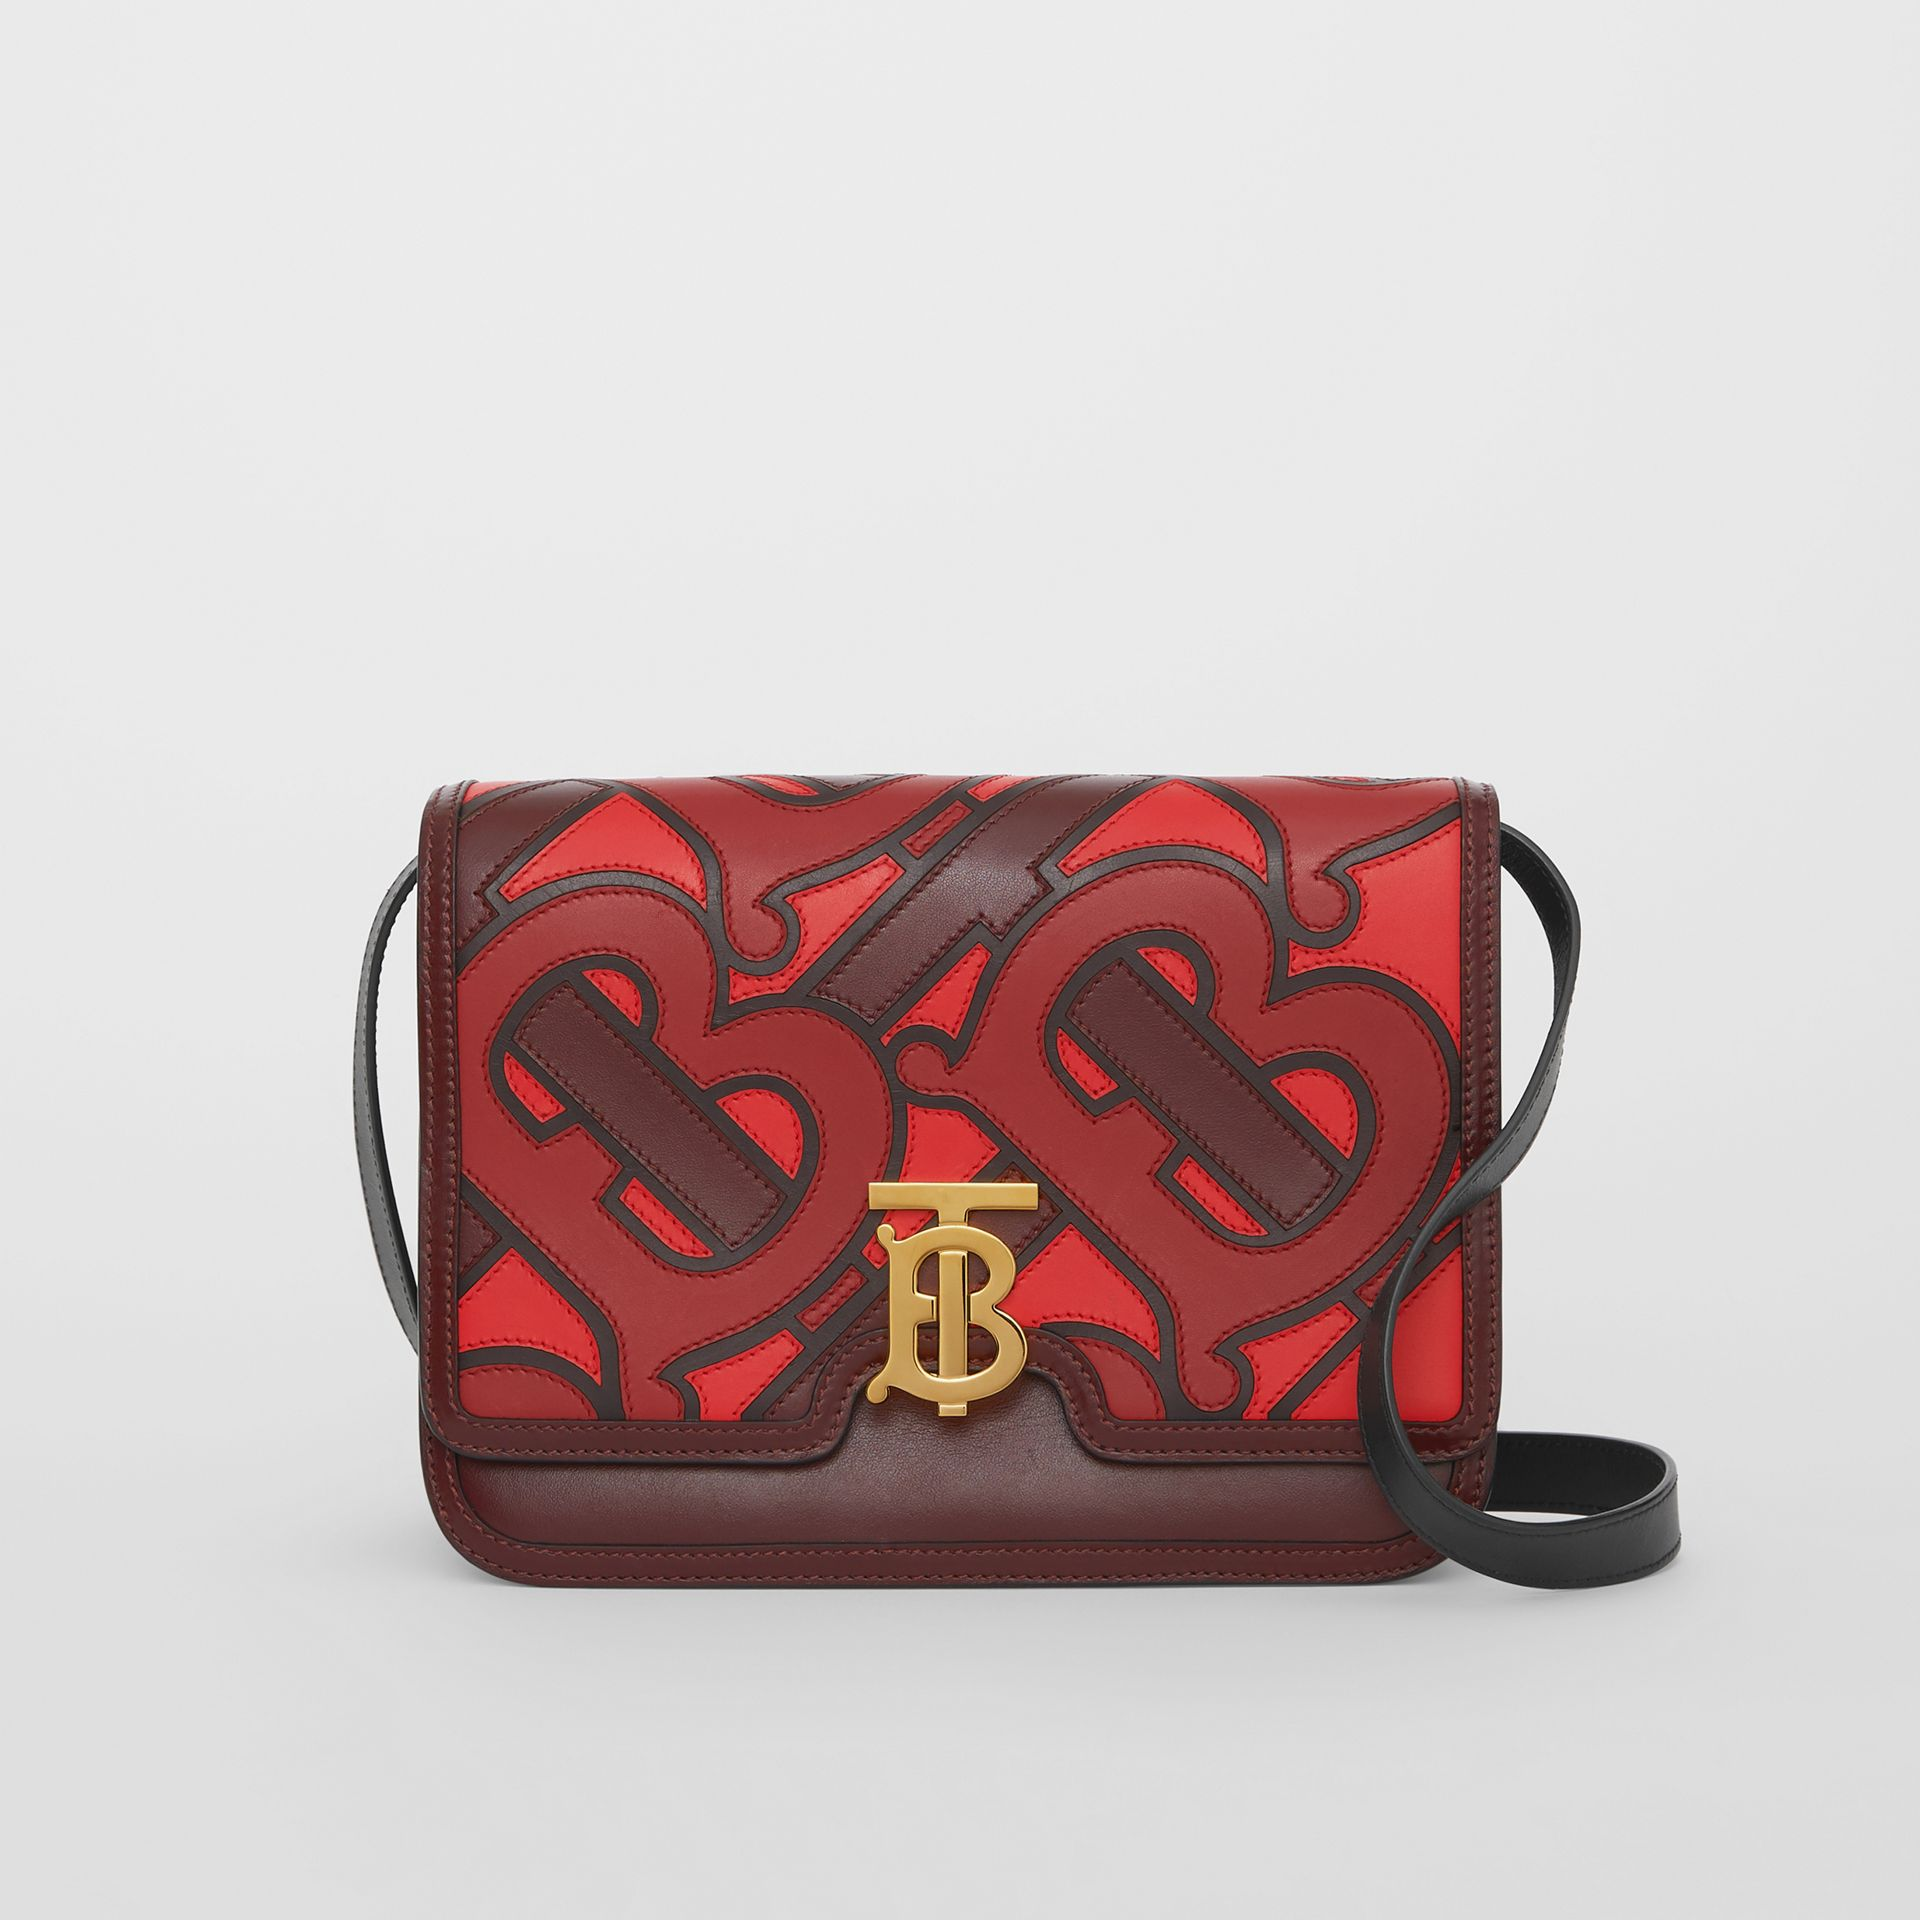 Medium Monogram Appliqué Leather TB Bag in Oxblood - Women | Burberry United Kingdom - gallery image 0